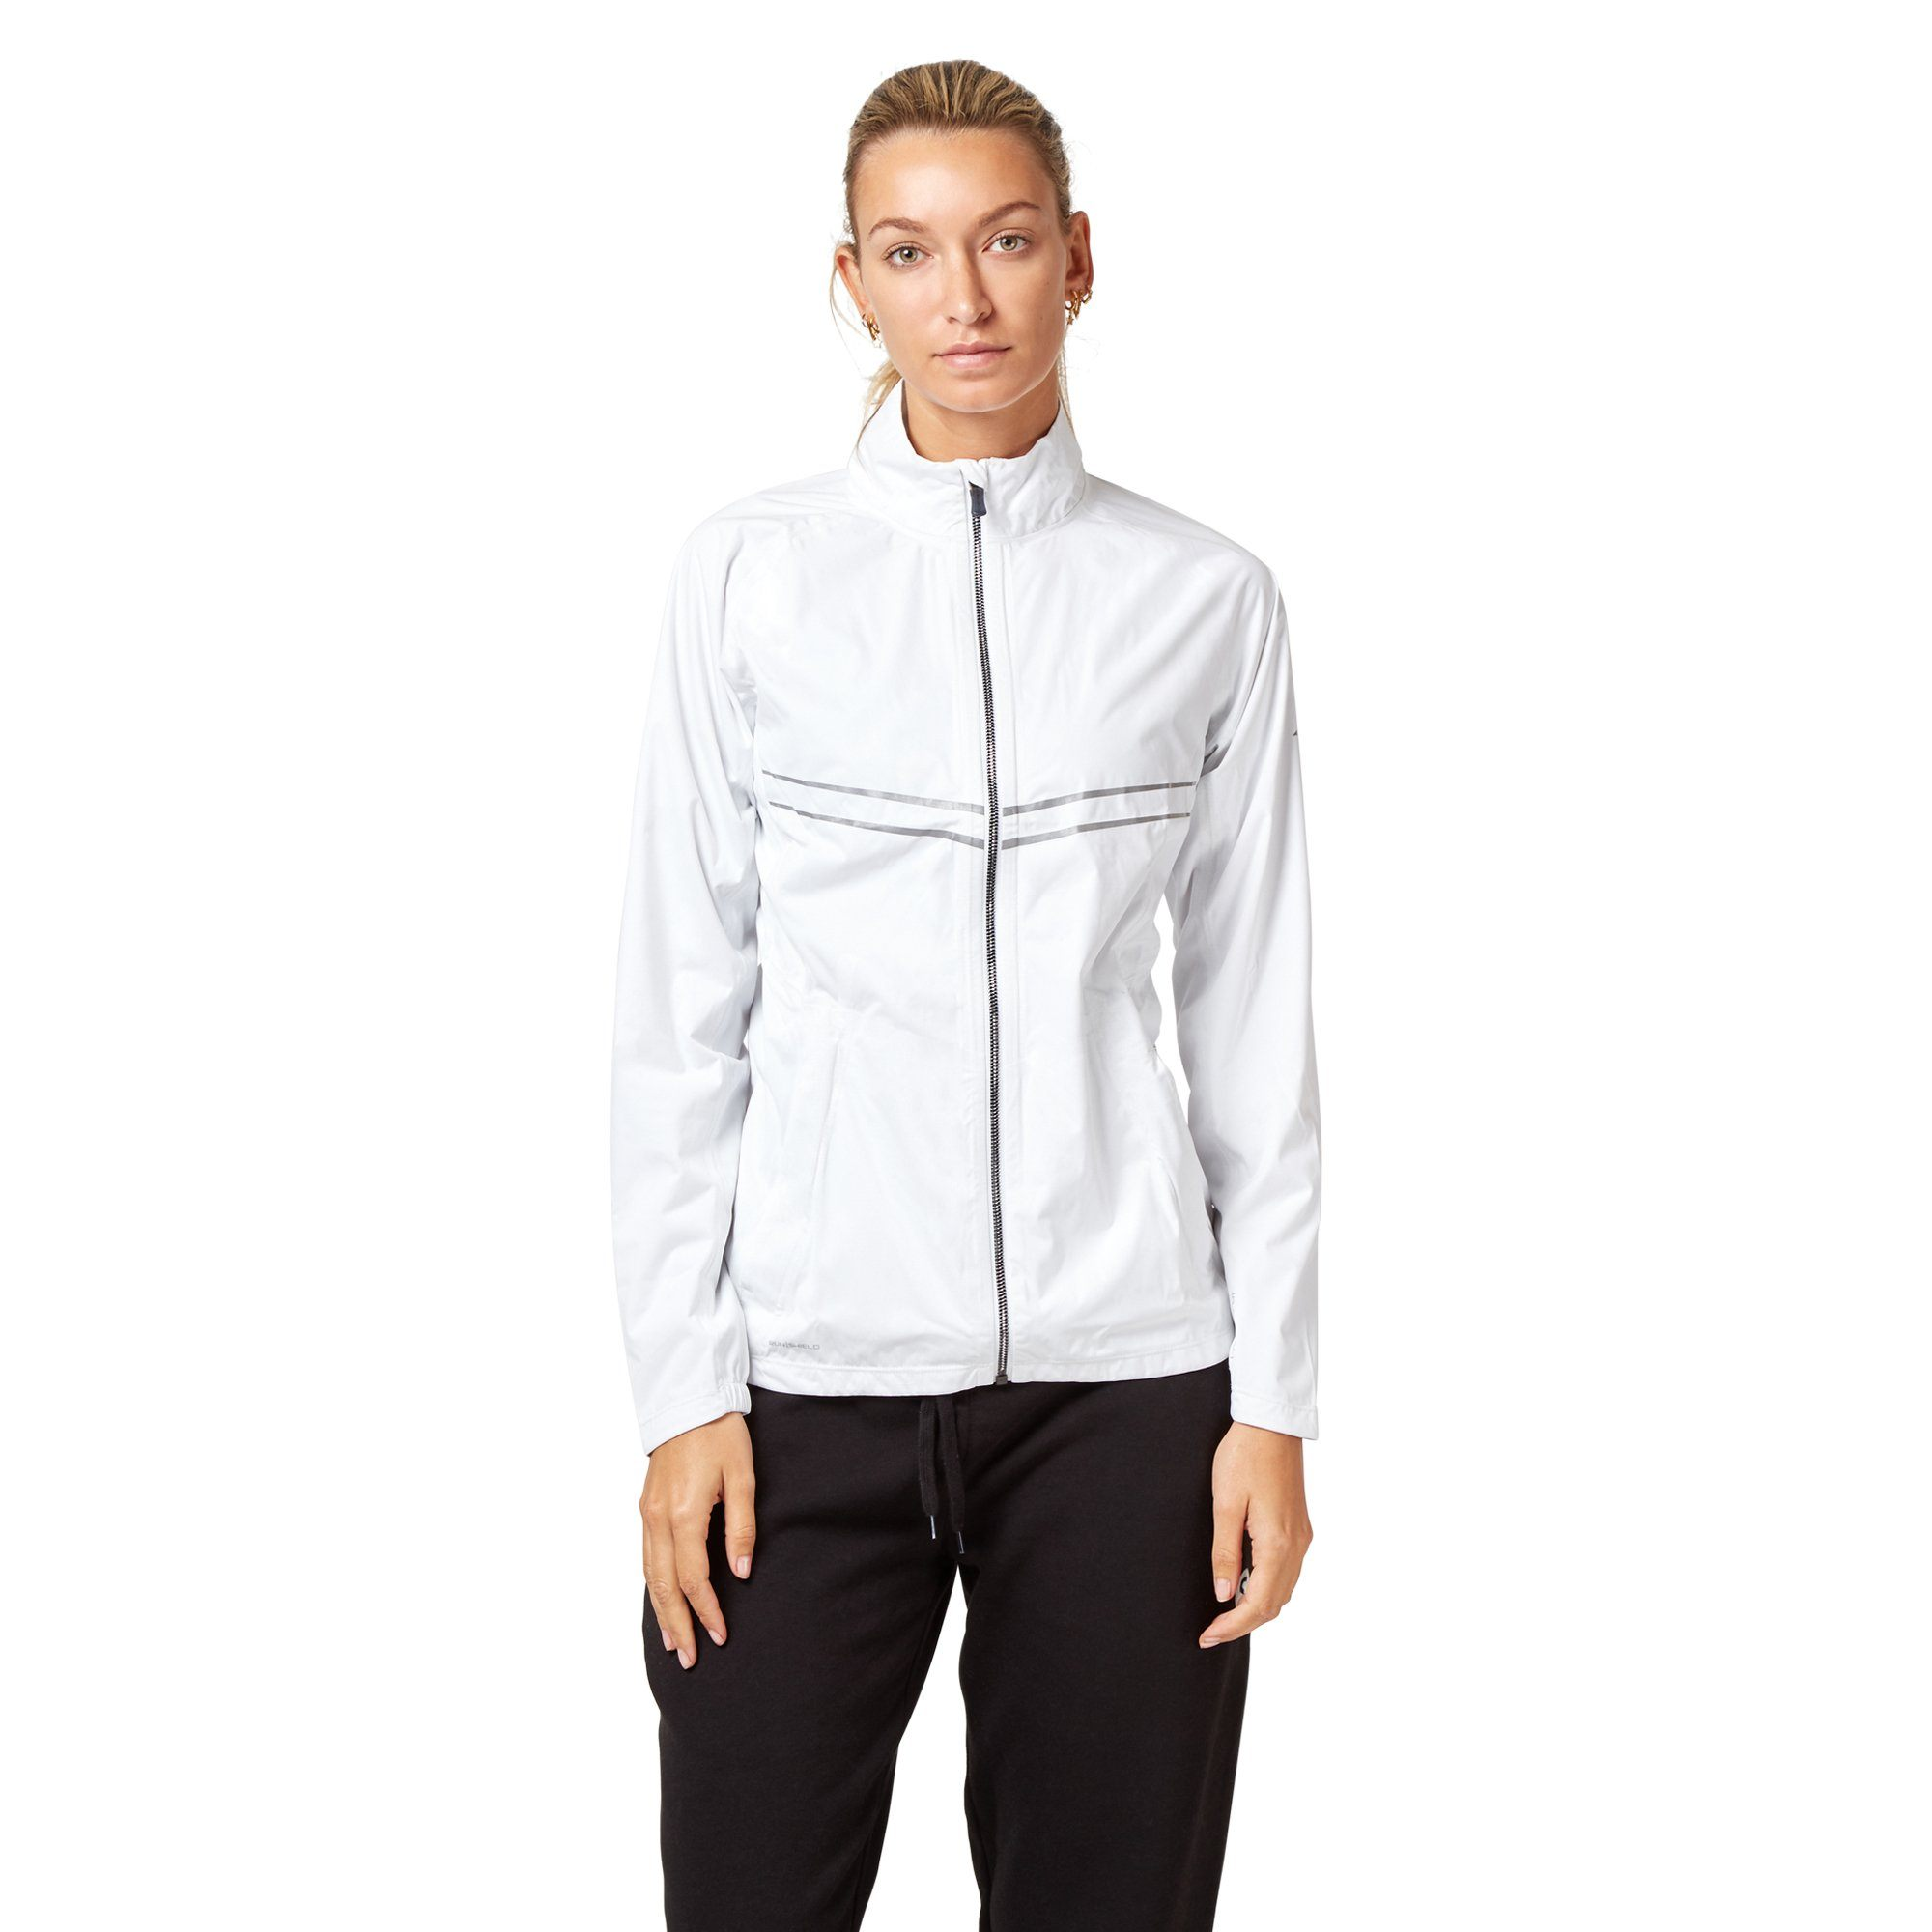 Saucony Razor Jacket - Whitetail Apparel Saucony